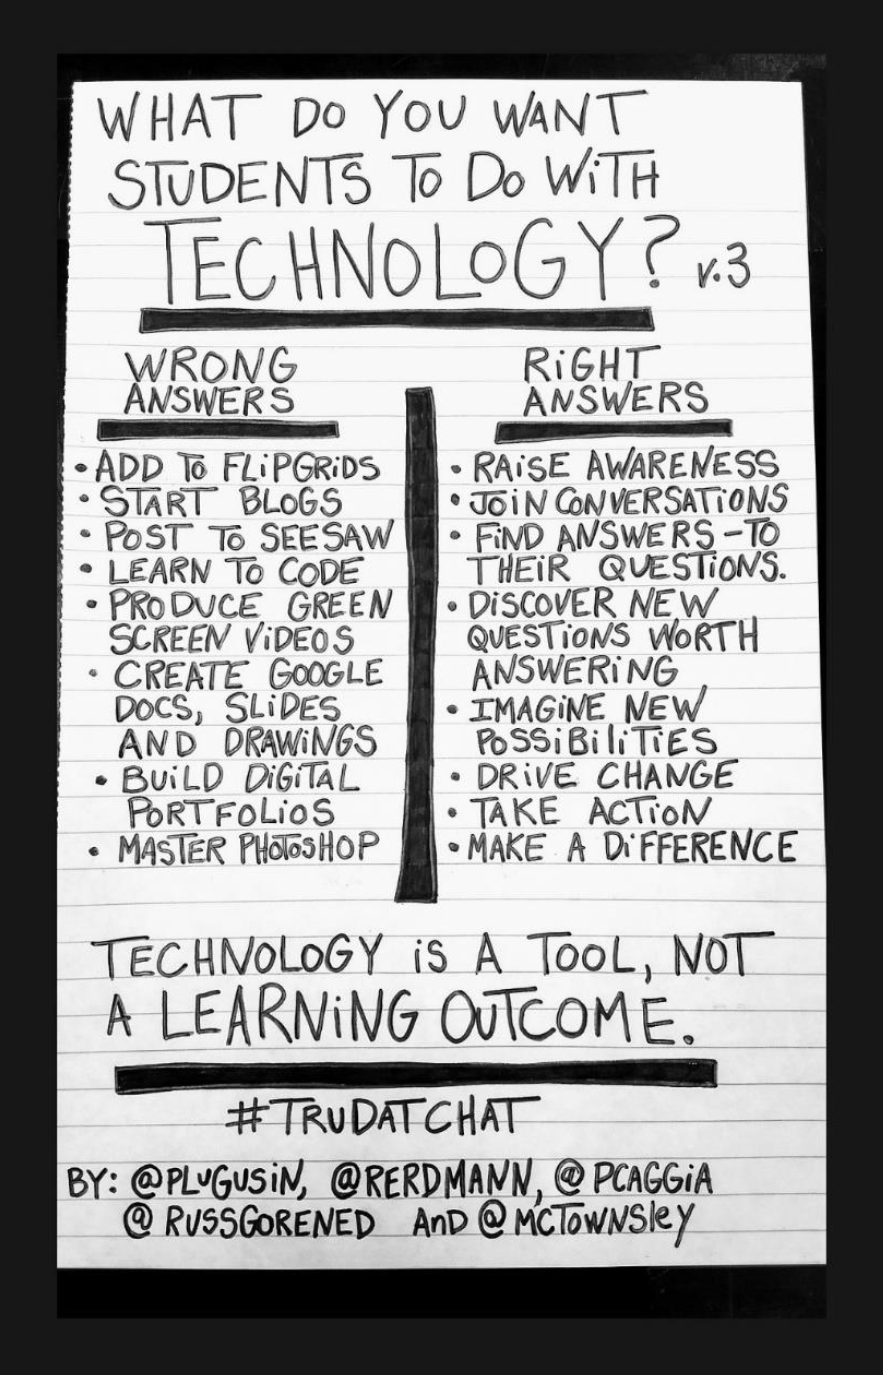 The images gives examples of how technology can be used as a tool, not a learning outcome.